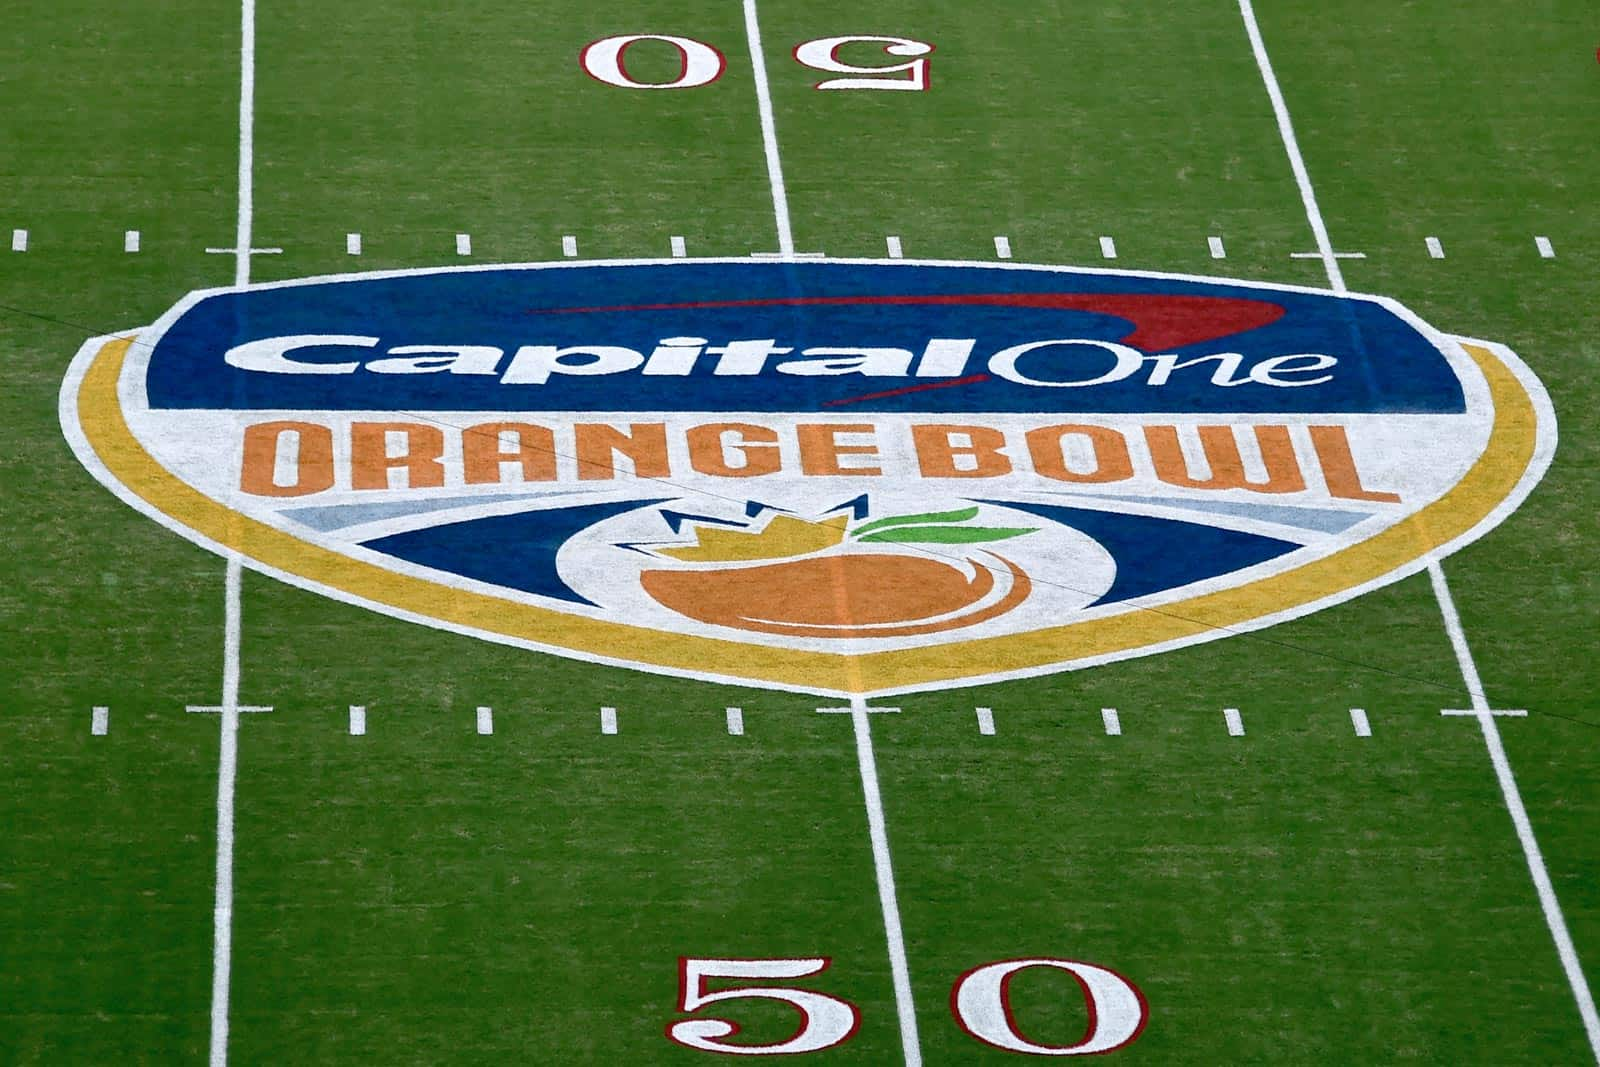 College football bowl schedule 2019 breakdown: Part IV - Dec. 30-31